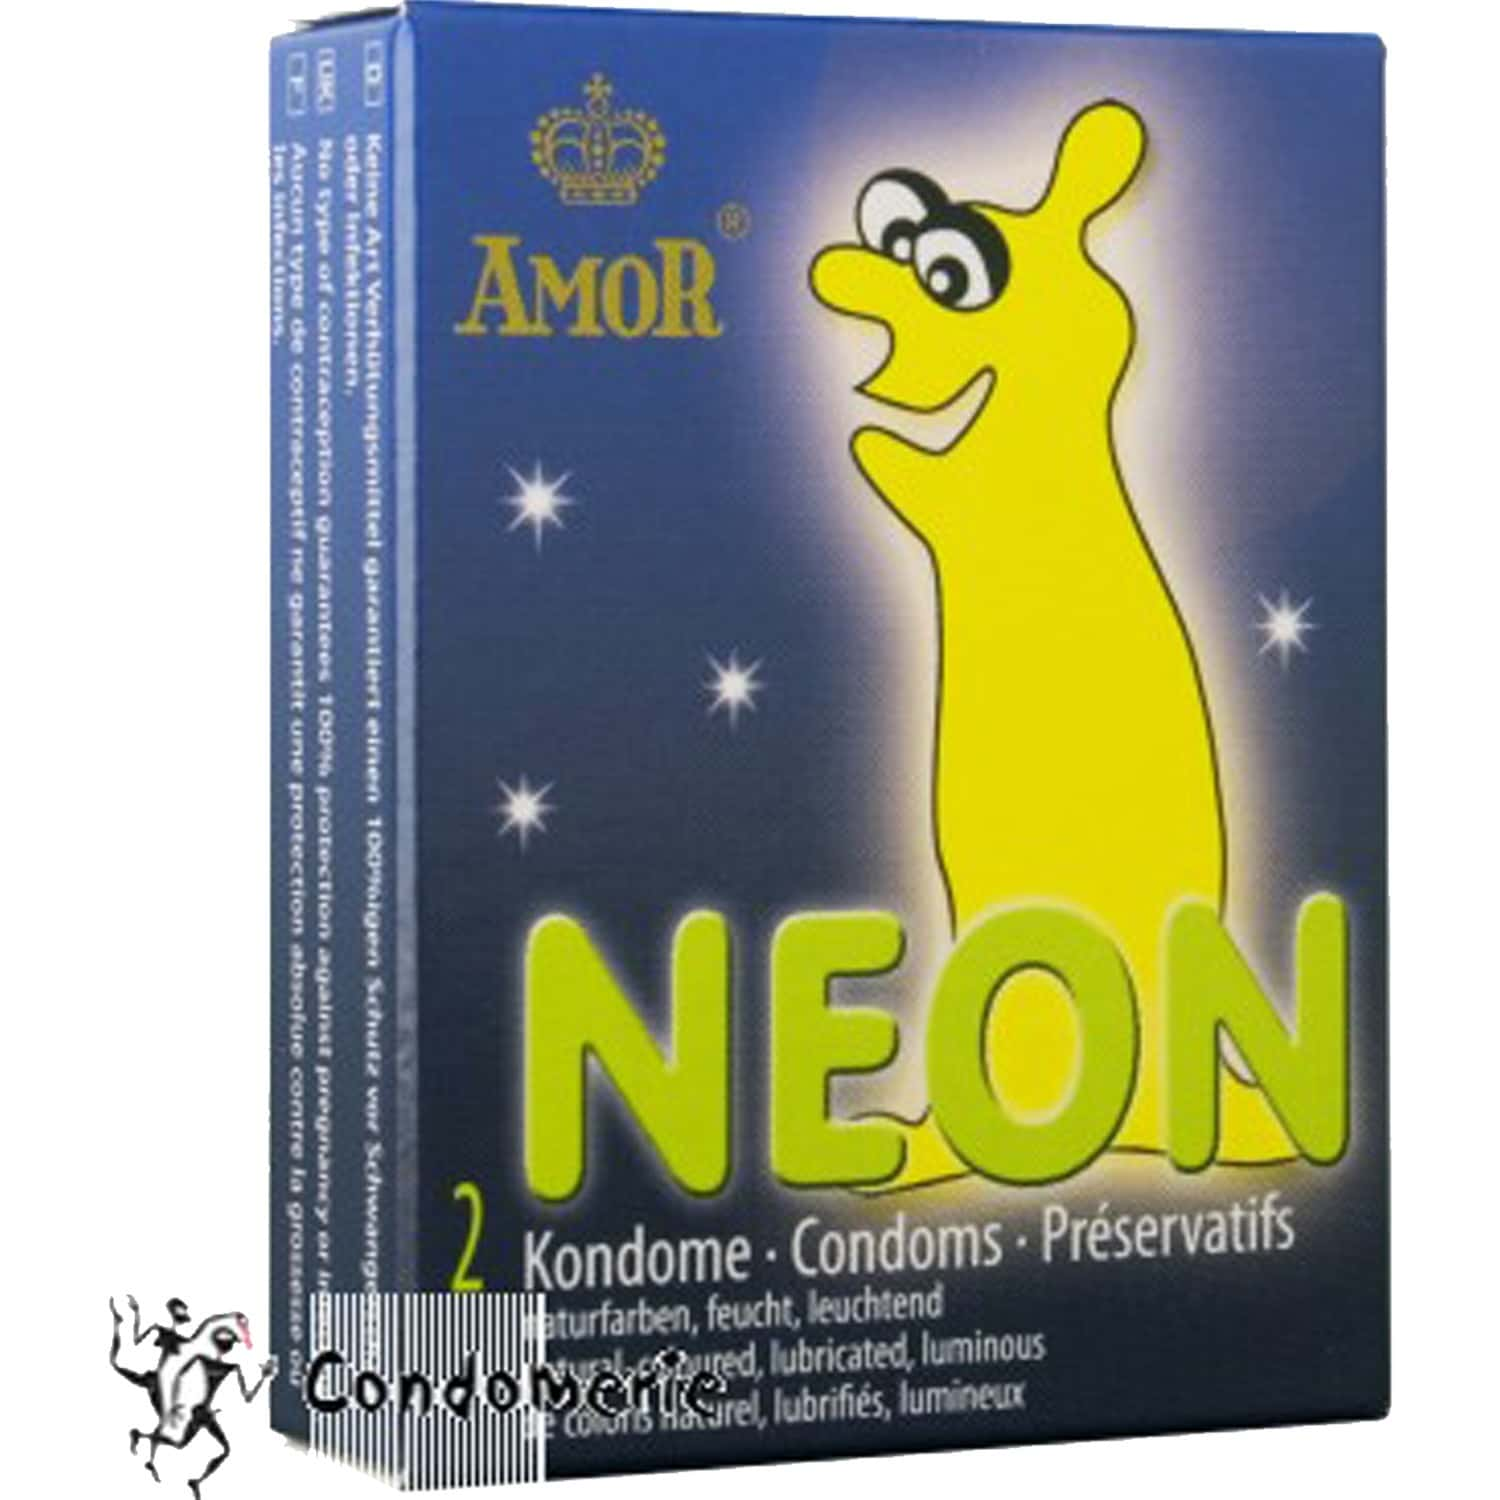 Amor Neon Lubricated Unique Condoms From Germany - Pack Of 4